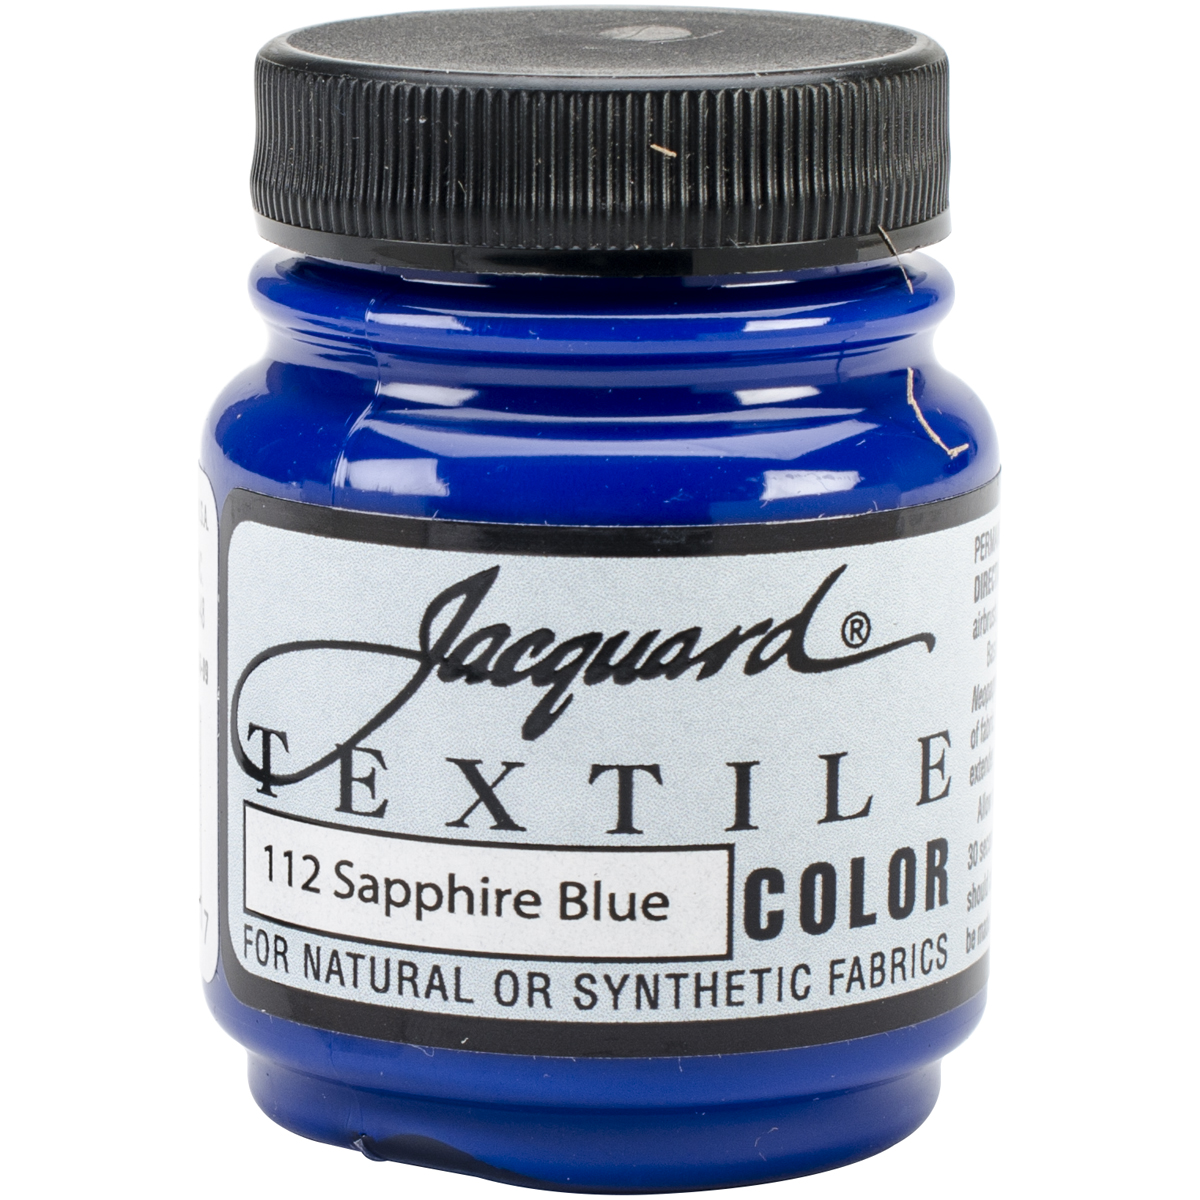 Jacquard Textile Color Fabric Paint 2.25oz-Sapphire Blue